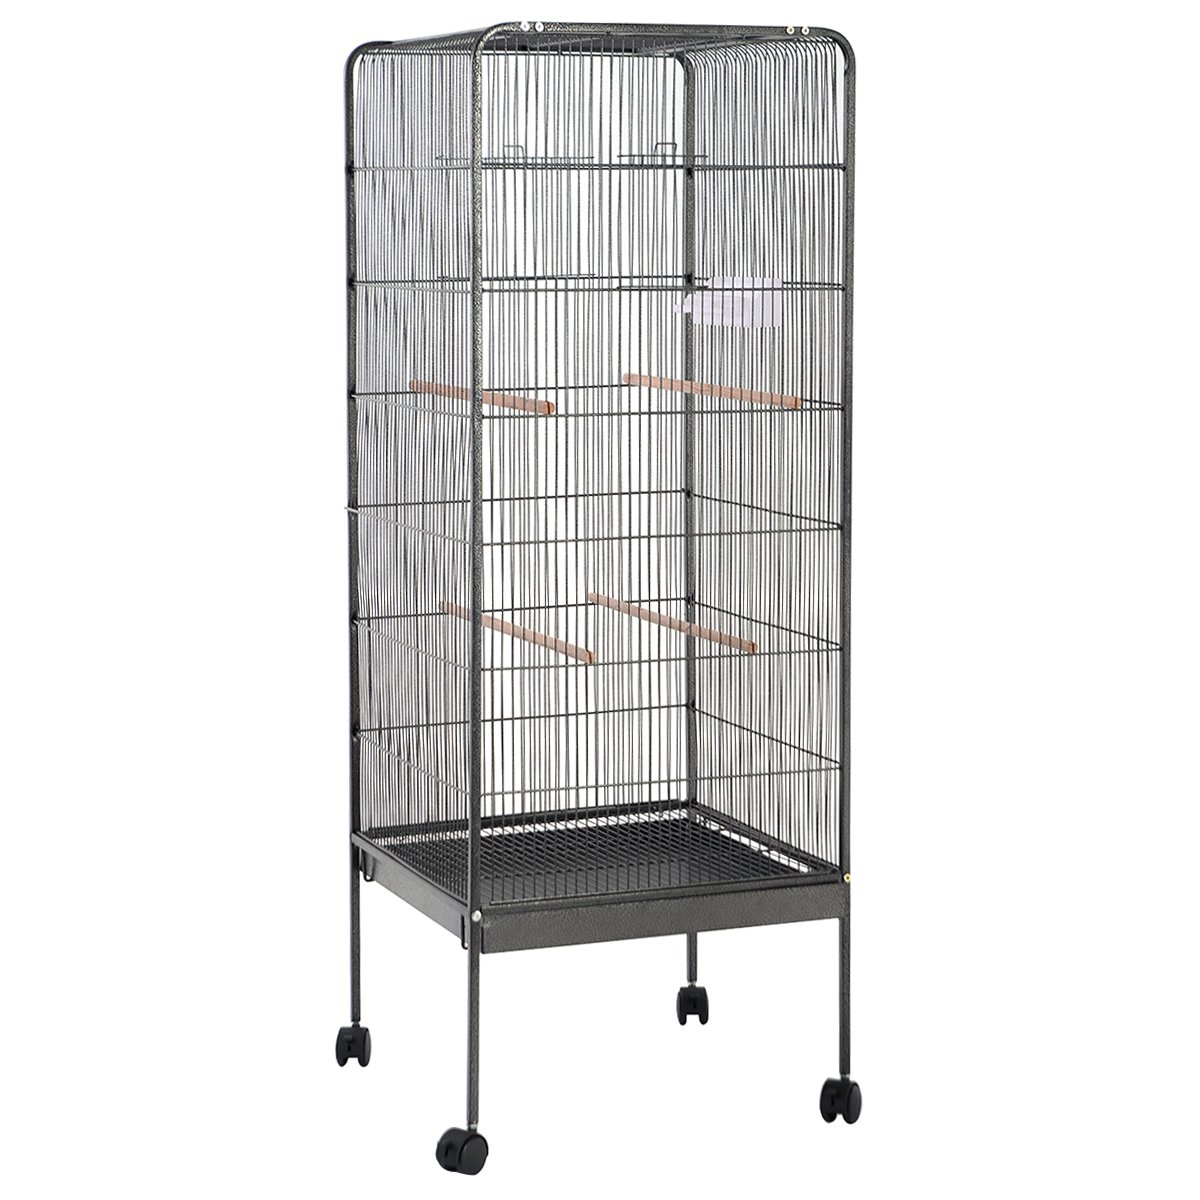 PETSJOY 58'' Large Bird Cage Parrot Cage for African Grey Senegal Parrots Sun Parakeets Green Cheeked Lovebirds Budgies Top Play Pet Bird Cage with Perch and Stand, 2 Doors 2 Feeders, Iron, Dark Gray by PETSJOY